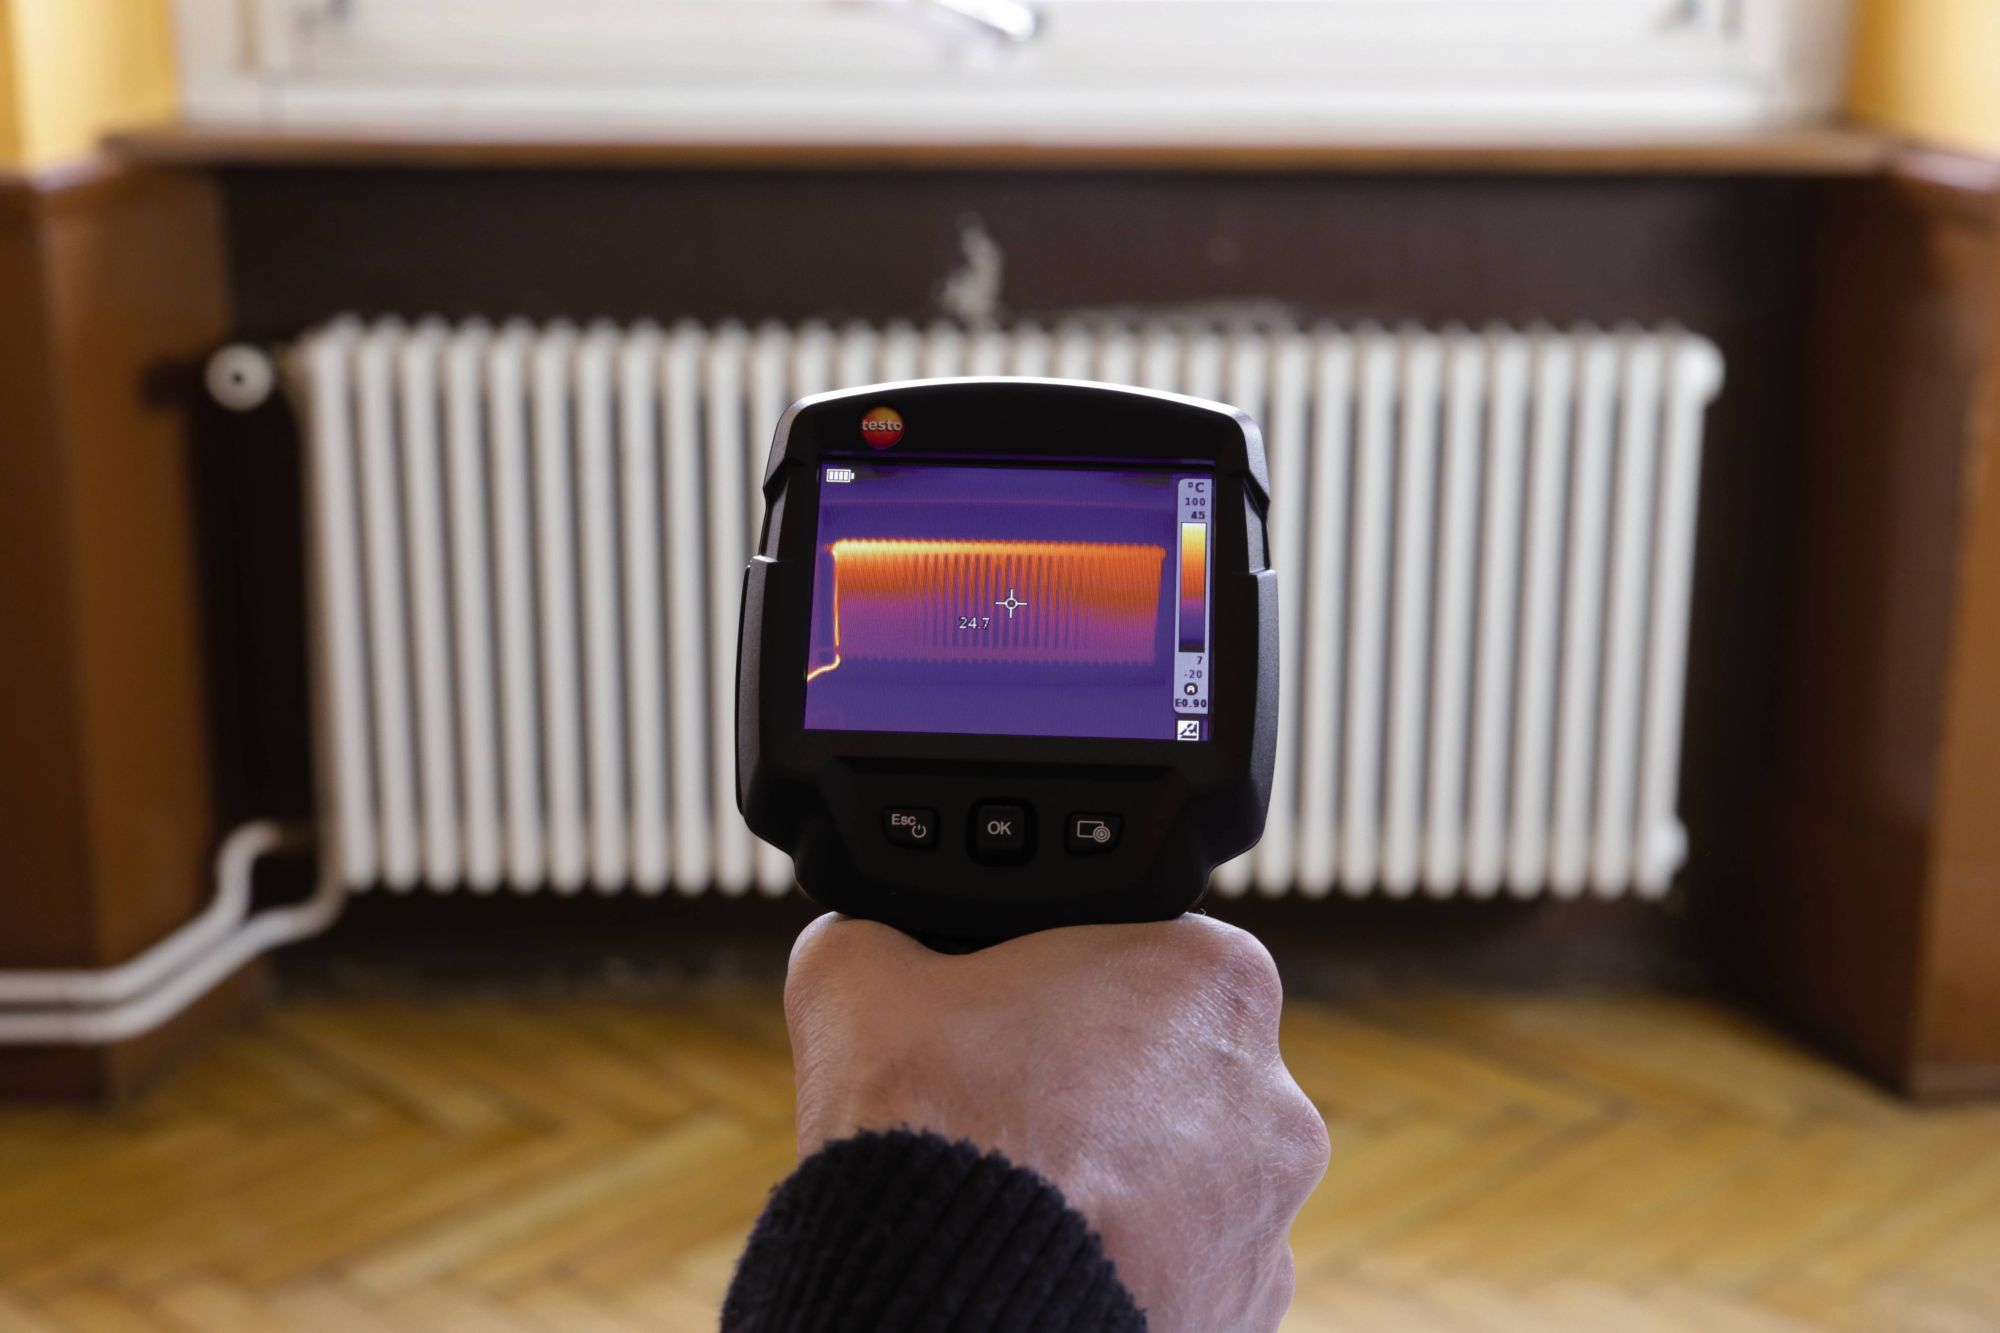 Checking heating systems and finding leaks with thermal imagers from Testo